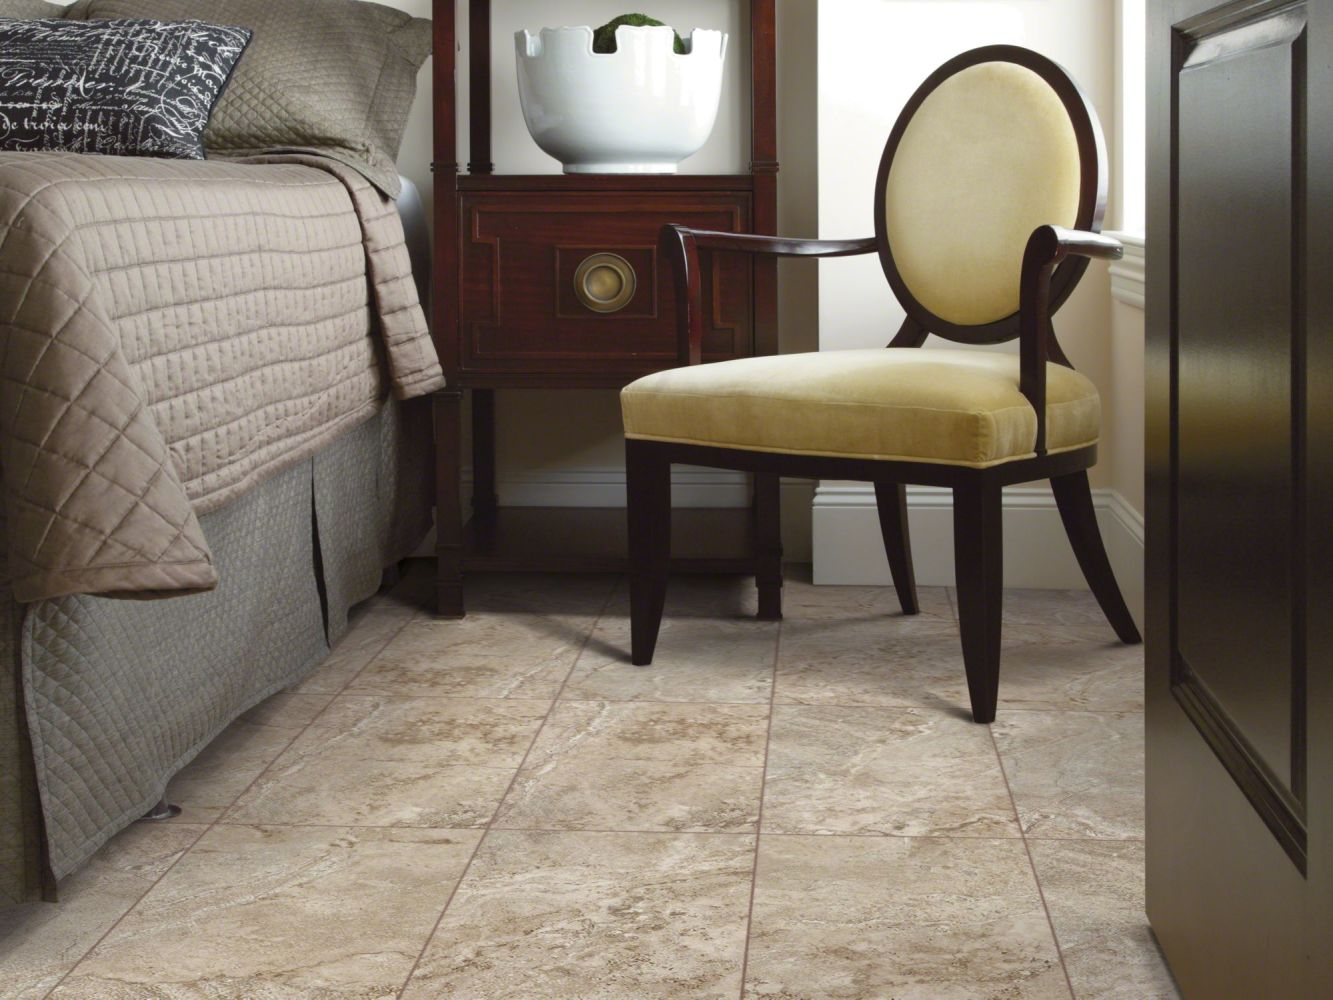 Shaw Floors Vinyl Residential Fairmount Ti 20 Cedar Grove 00748_0414V